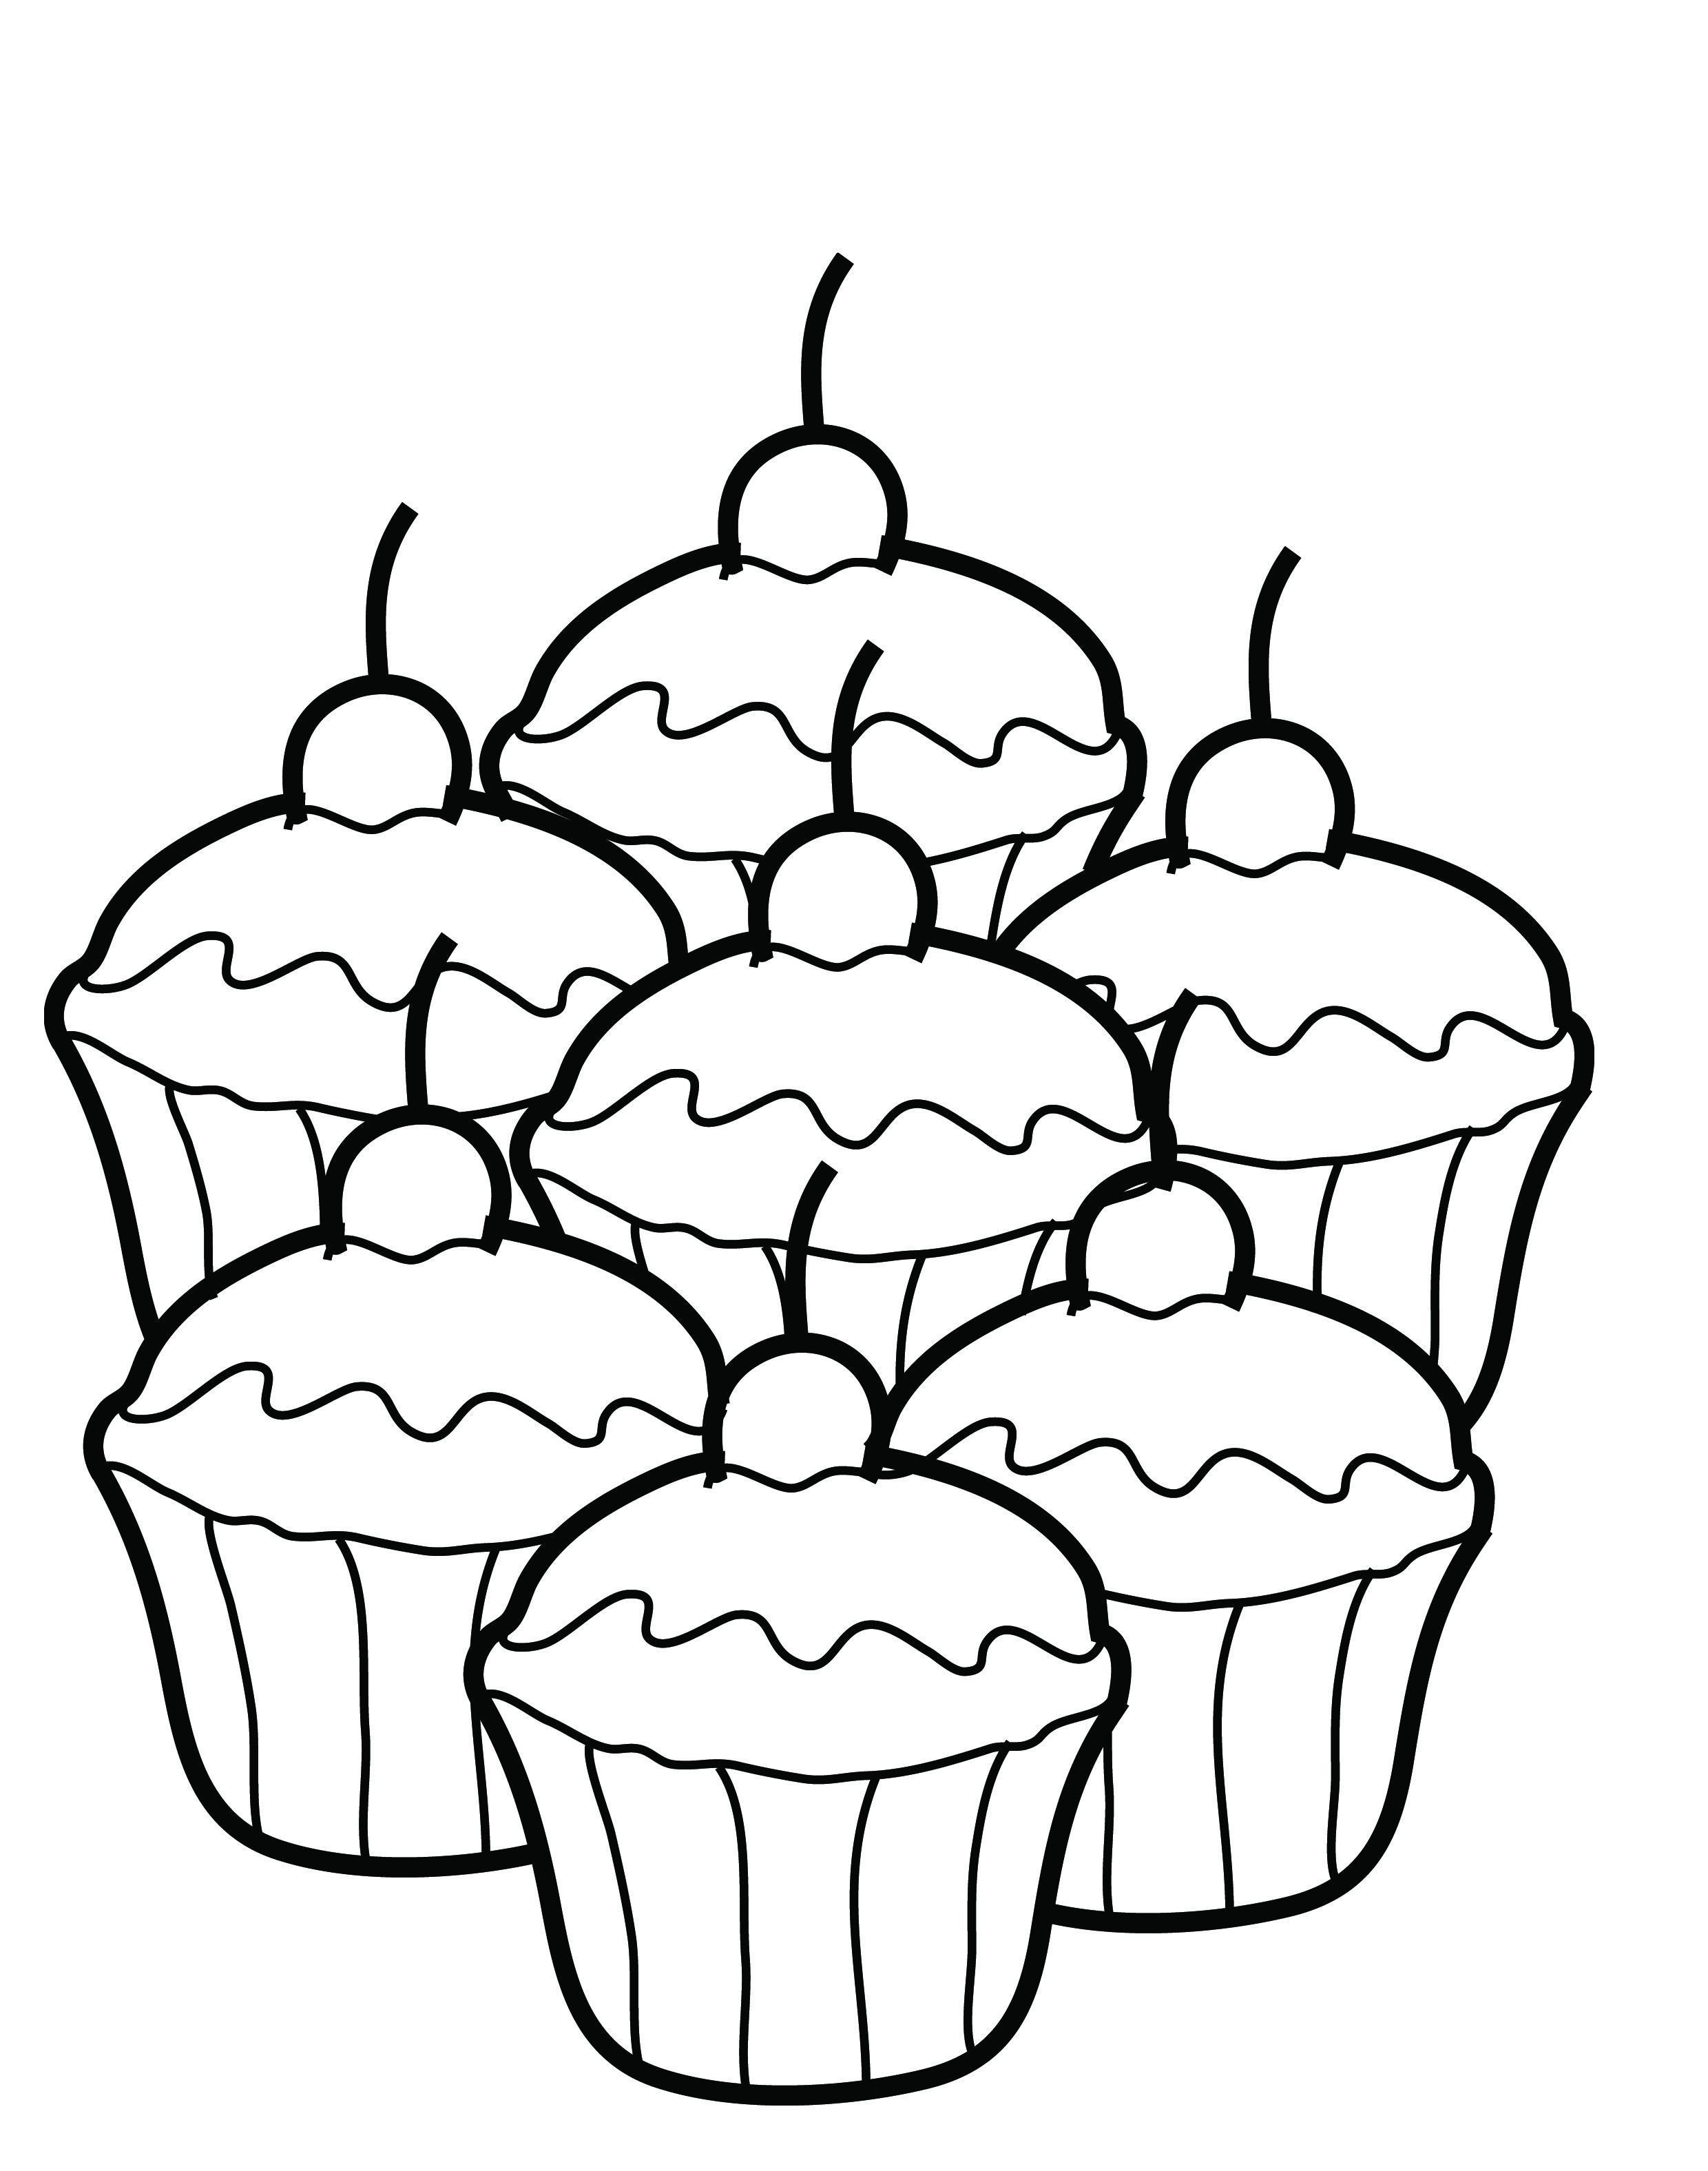 cupcake coloring pages for kids - Coloring Pages Images